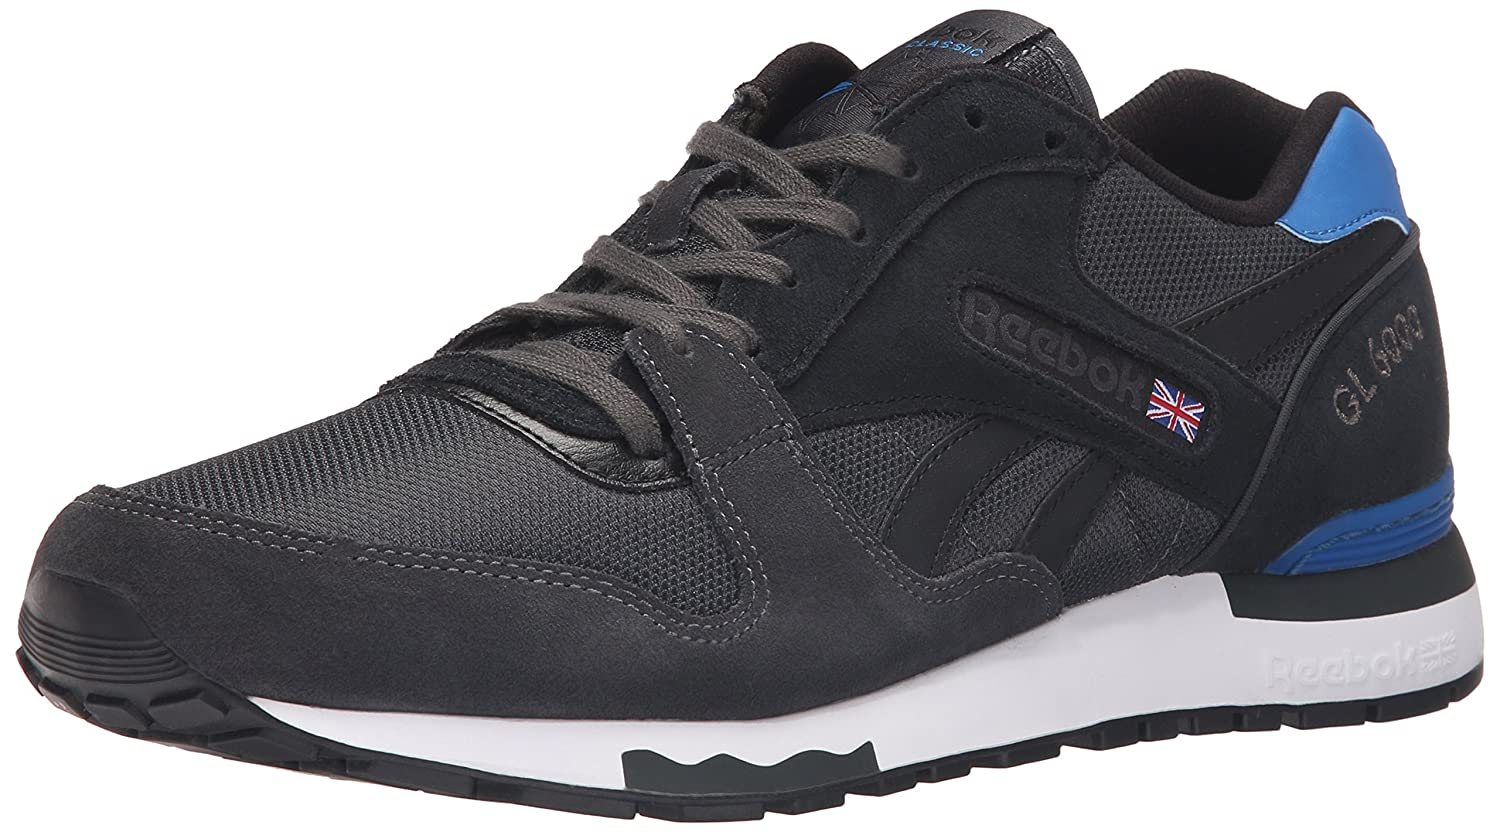 big discount sale offer outlet store Amazon.com | Reebok Men's GL 6000 Athletic Classic Sneaker ...